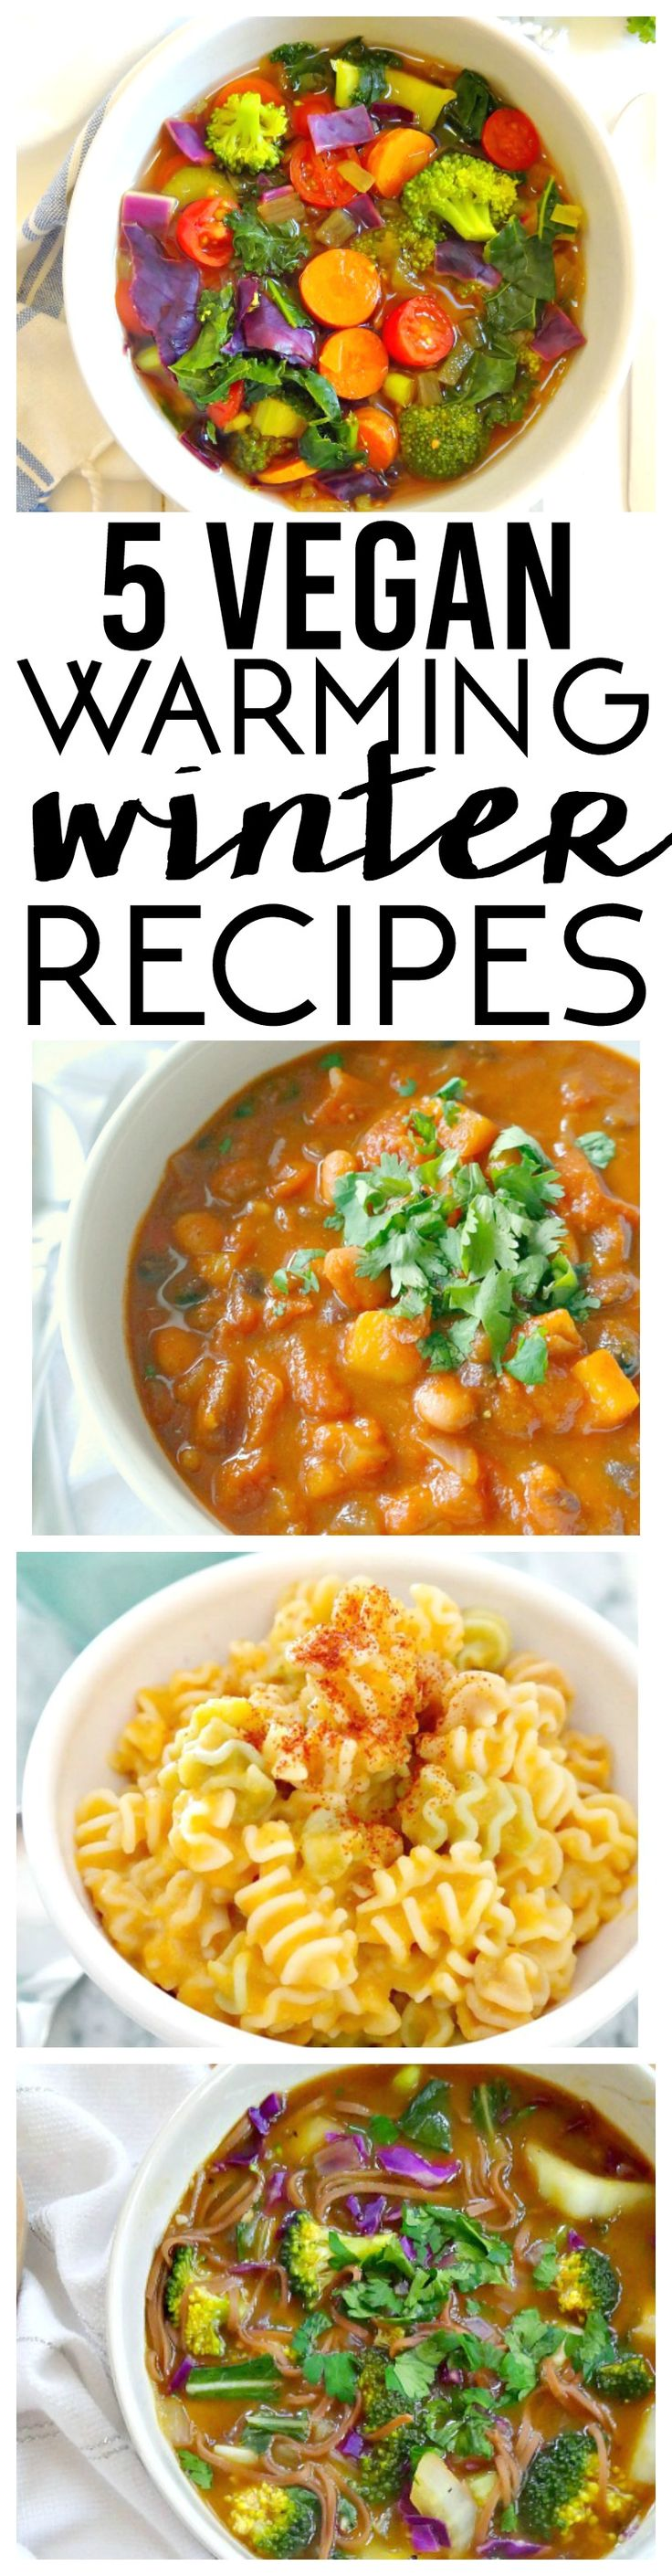 5 Vegan Warming Winter Recipes from Detox Soup to Spicy Chili to Asian-Inspired Noodle Soup and more, these 5 feel-good recipes are sure to warm you up and keep you nourished throughout the chilly winter months! From The Glowing Fridge.